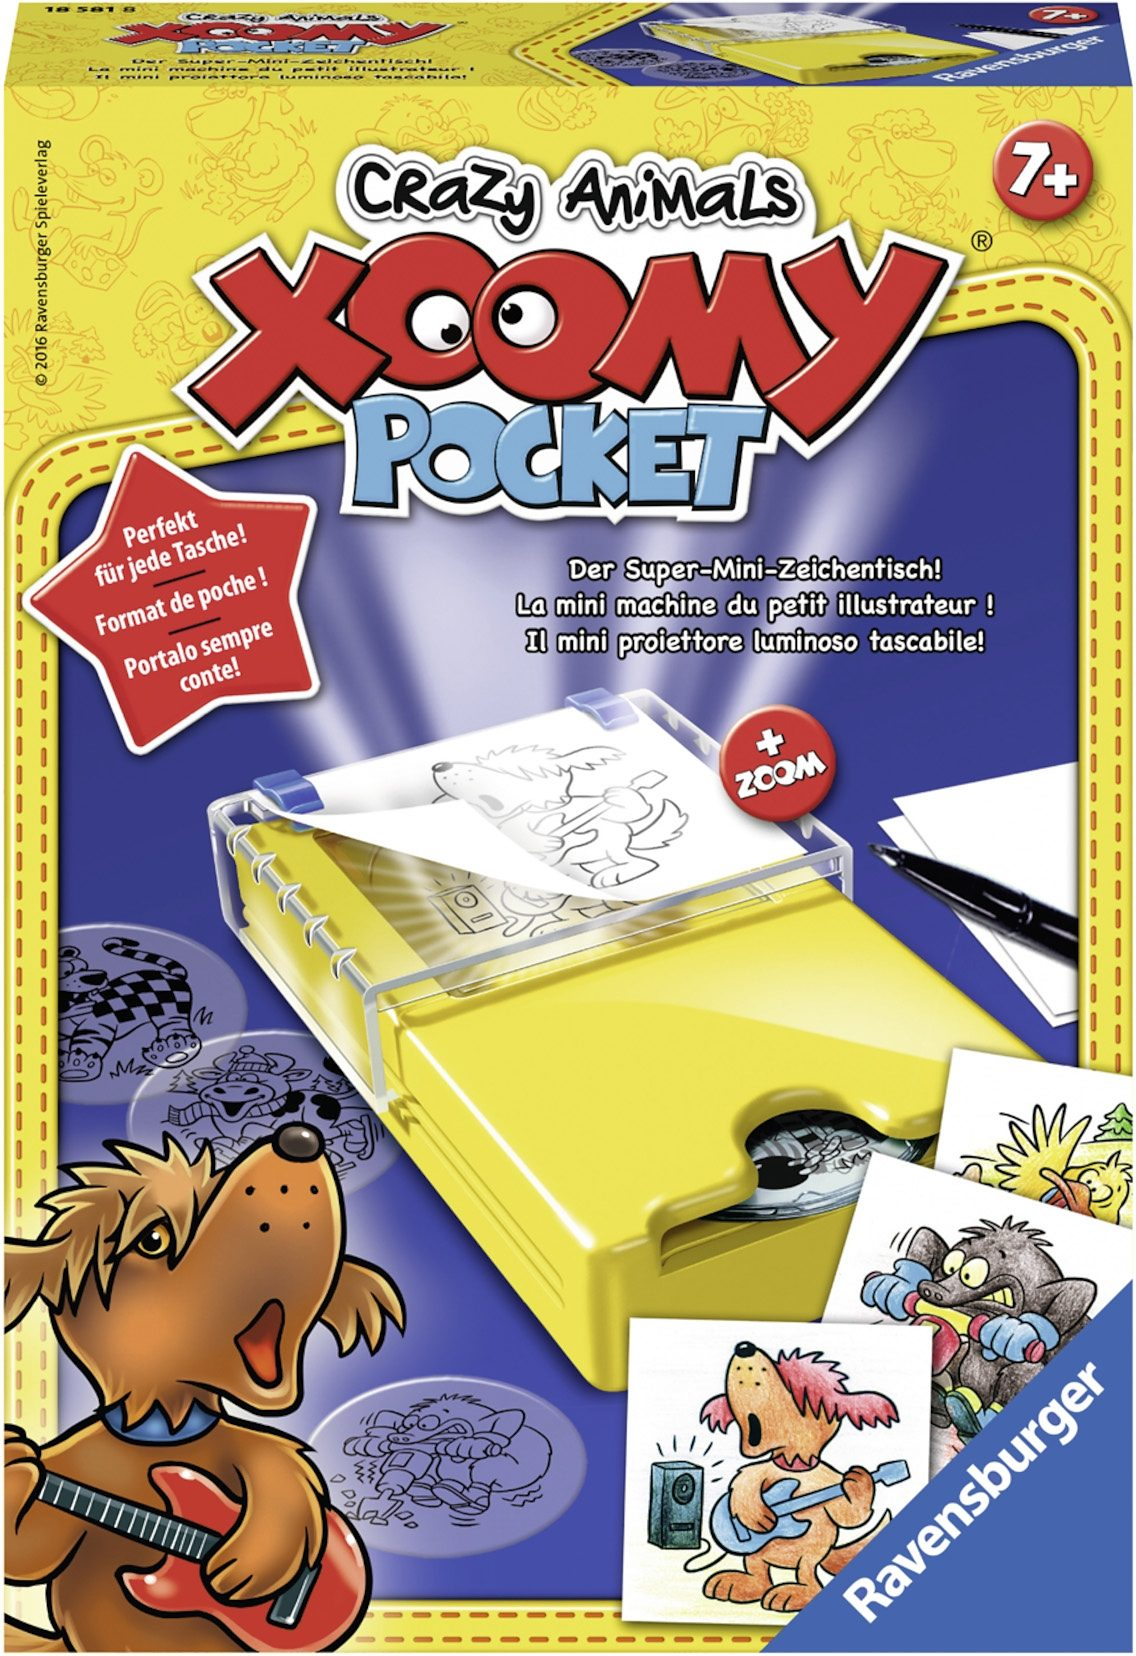 Ravensburger Zeichentisch, »Xoomy® Pocket Crazy Animals«